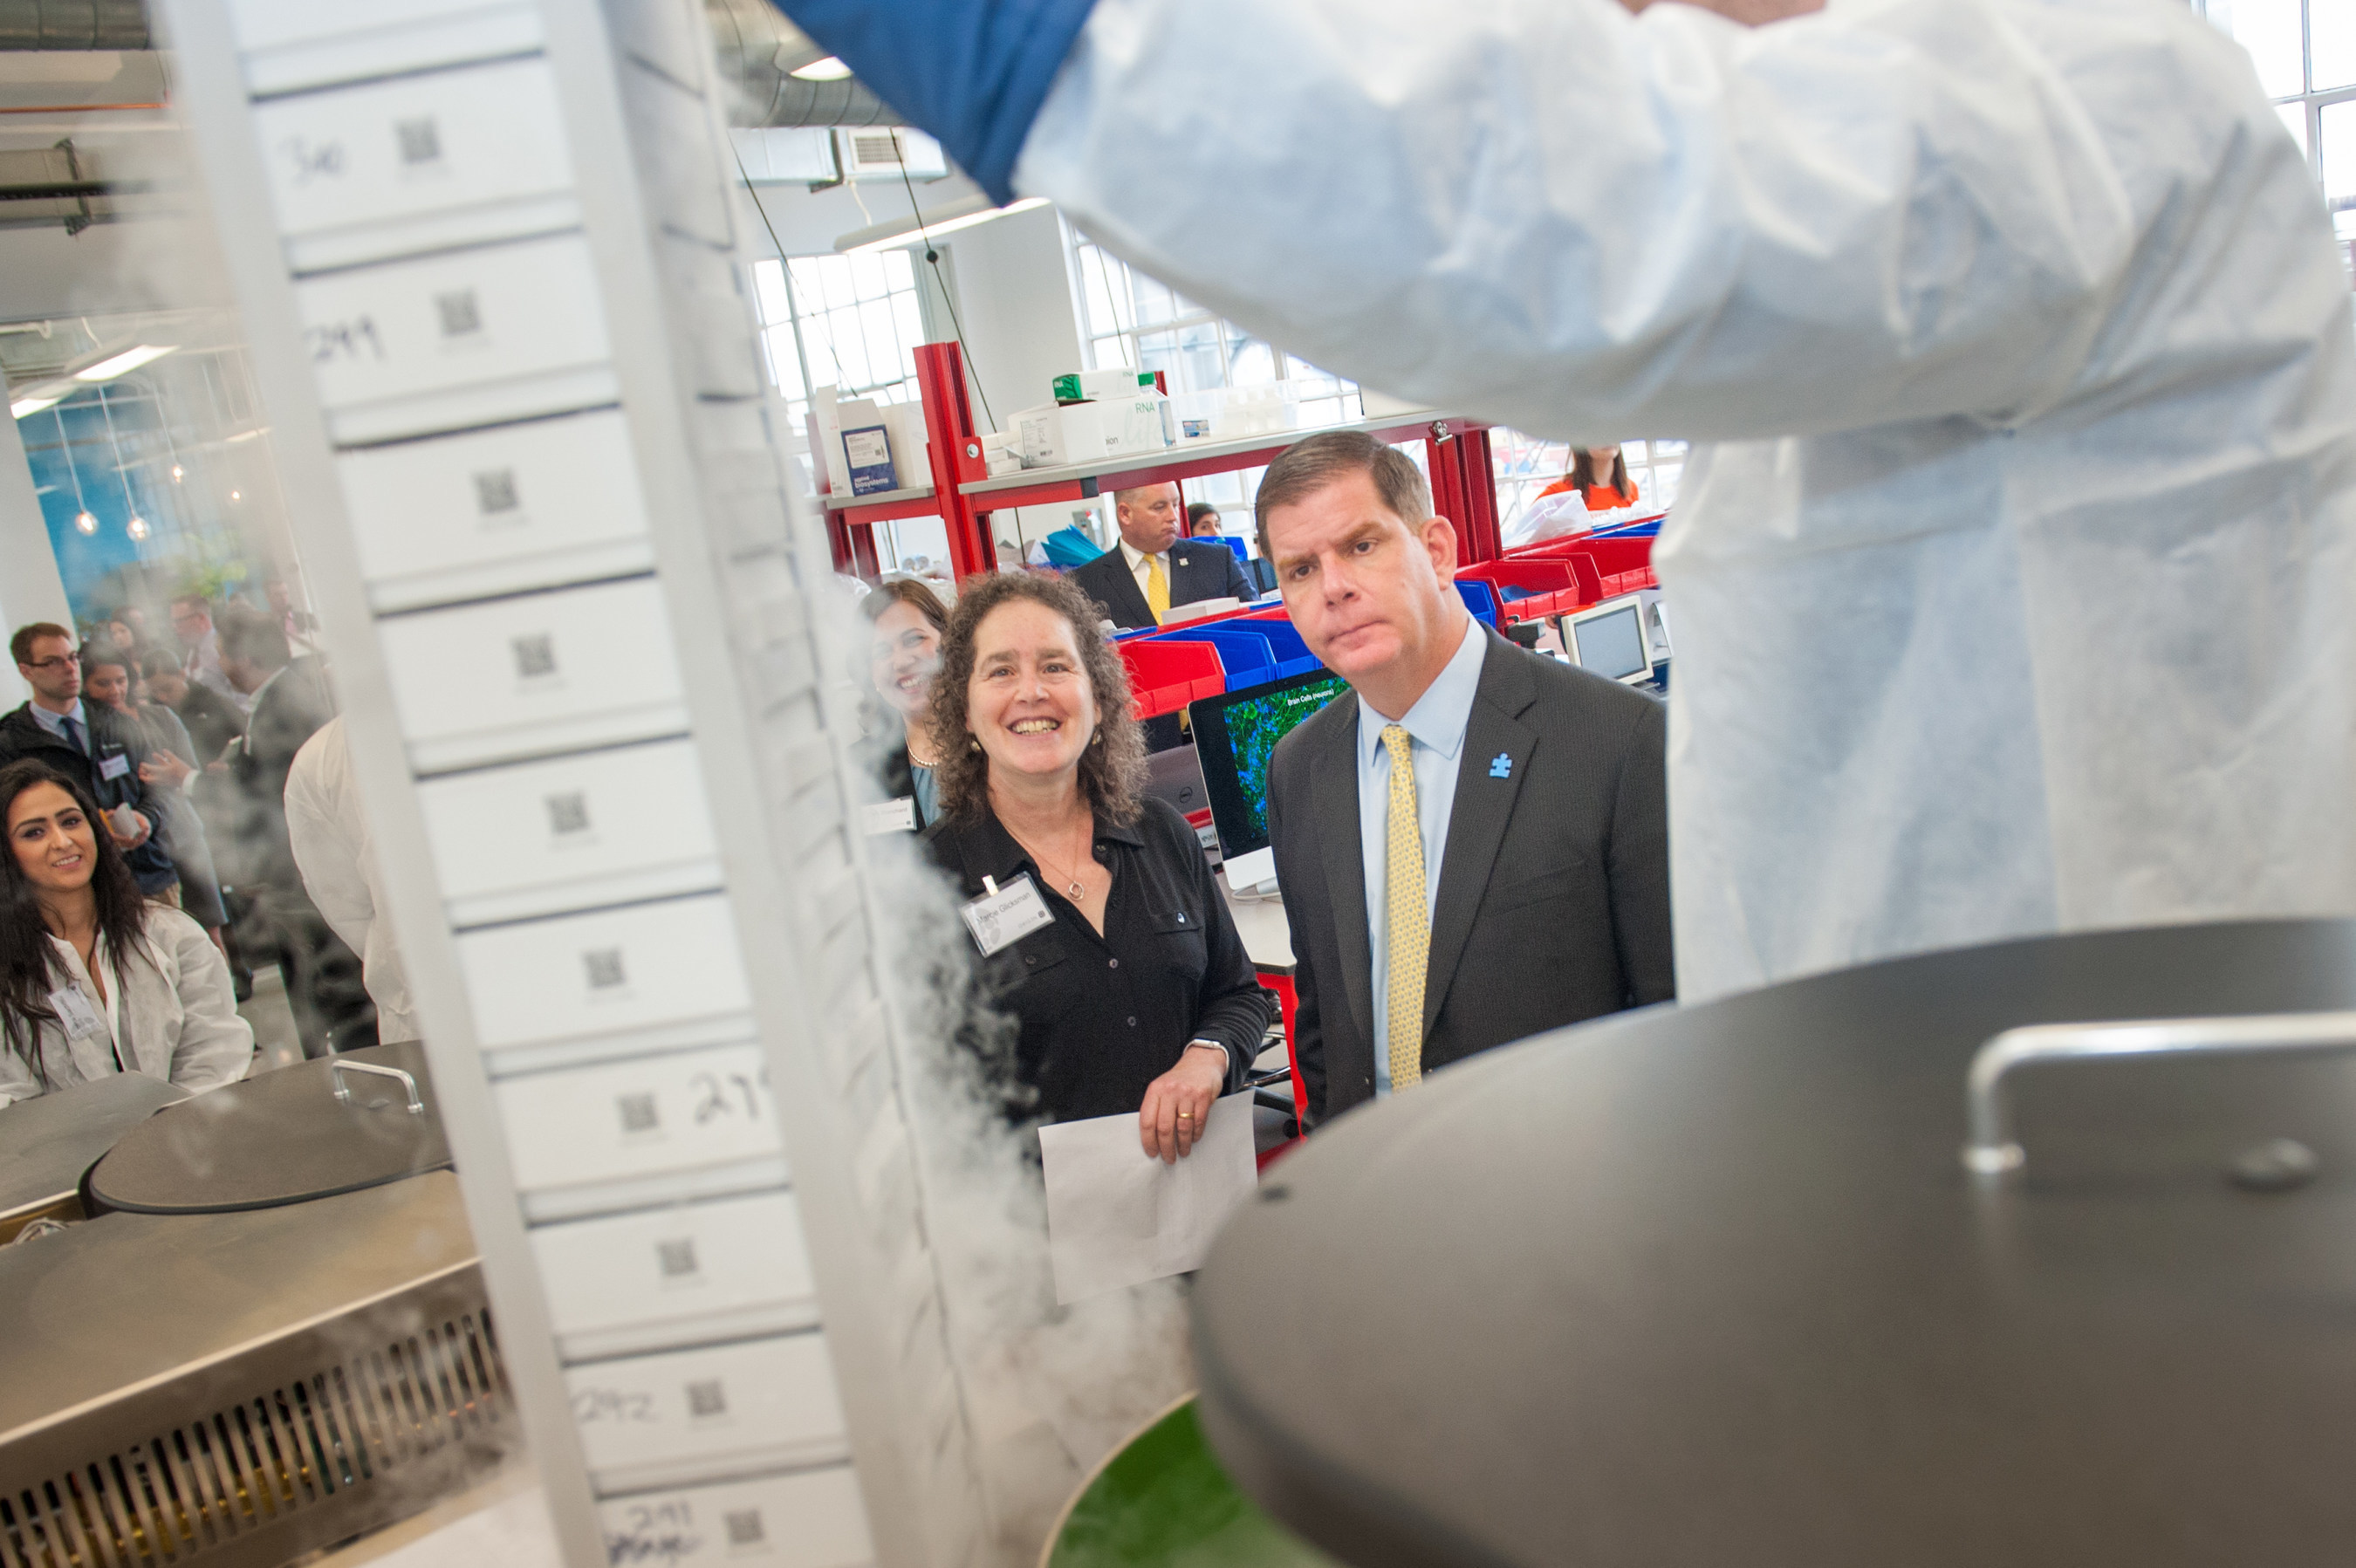 Mayor Martin J. Walsh viewed the contents of ORIG3N's LifeCapsule, the world's largest biorepository of induced pluripotent stem cells (iPSCs), during a lab tour with Marcie Glicksman, VP of Biology at ORIG3N. ORIG3N is the only biotechnology company that is crowdsourcing blood samples to understand the cellular and molecular foundations of disease. ORIG3N's new facility will help accelerate the next stage of evolution with iPSC technology.